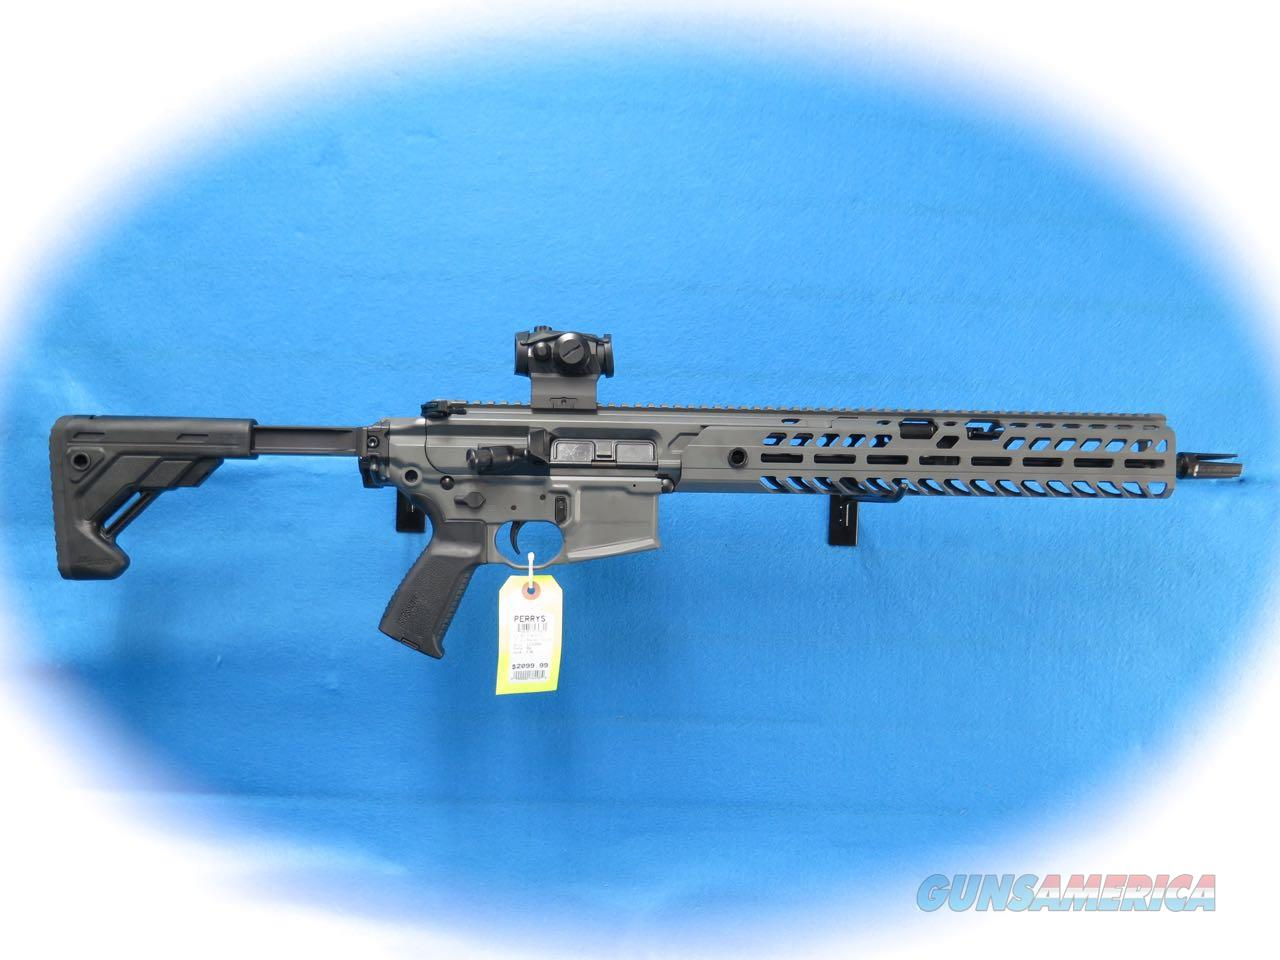 Sig Sauer MCX Virtus Patrol Rifle 5.56mm W/Red Dot Sight **New**  Guns > Rifles > Sig - Sauer/Sigarms Rifles